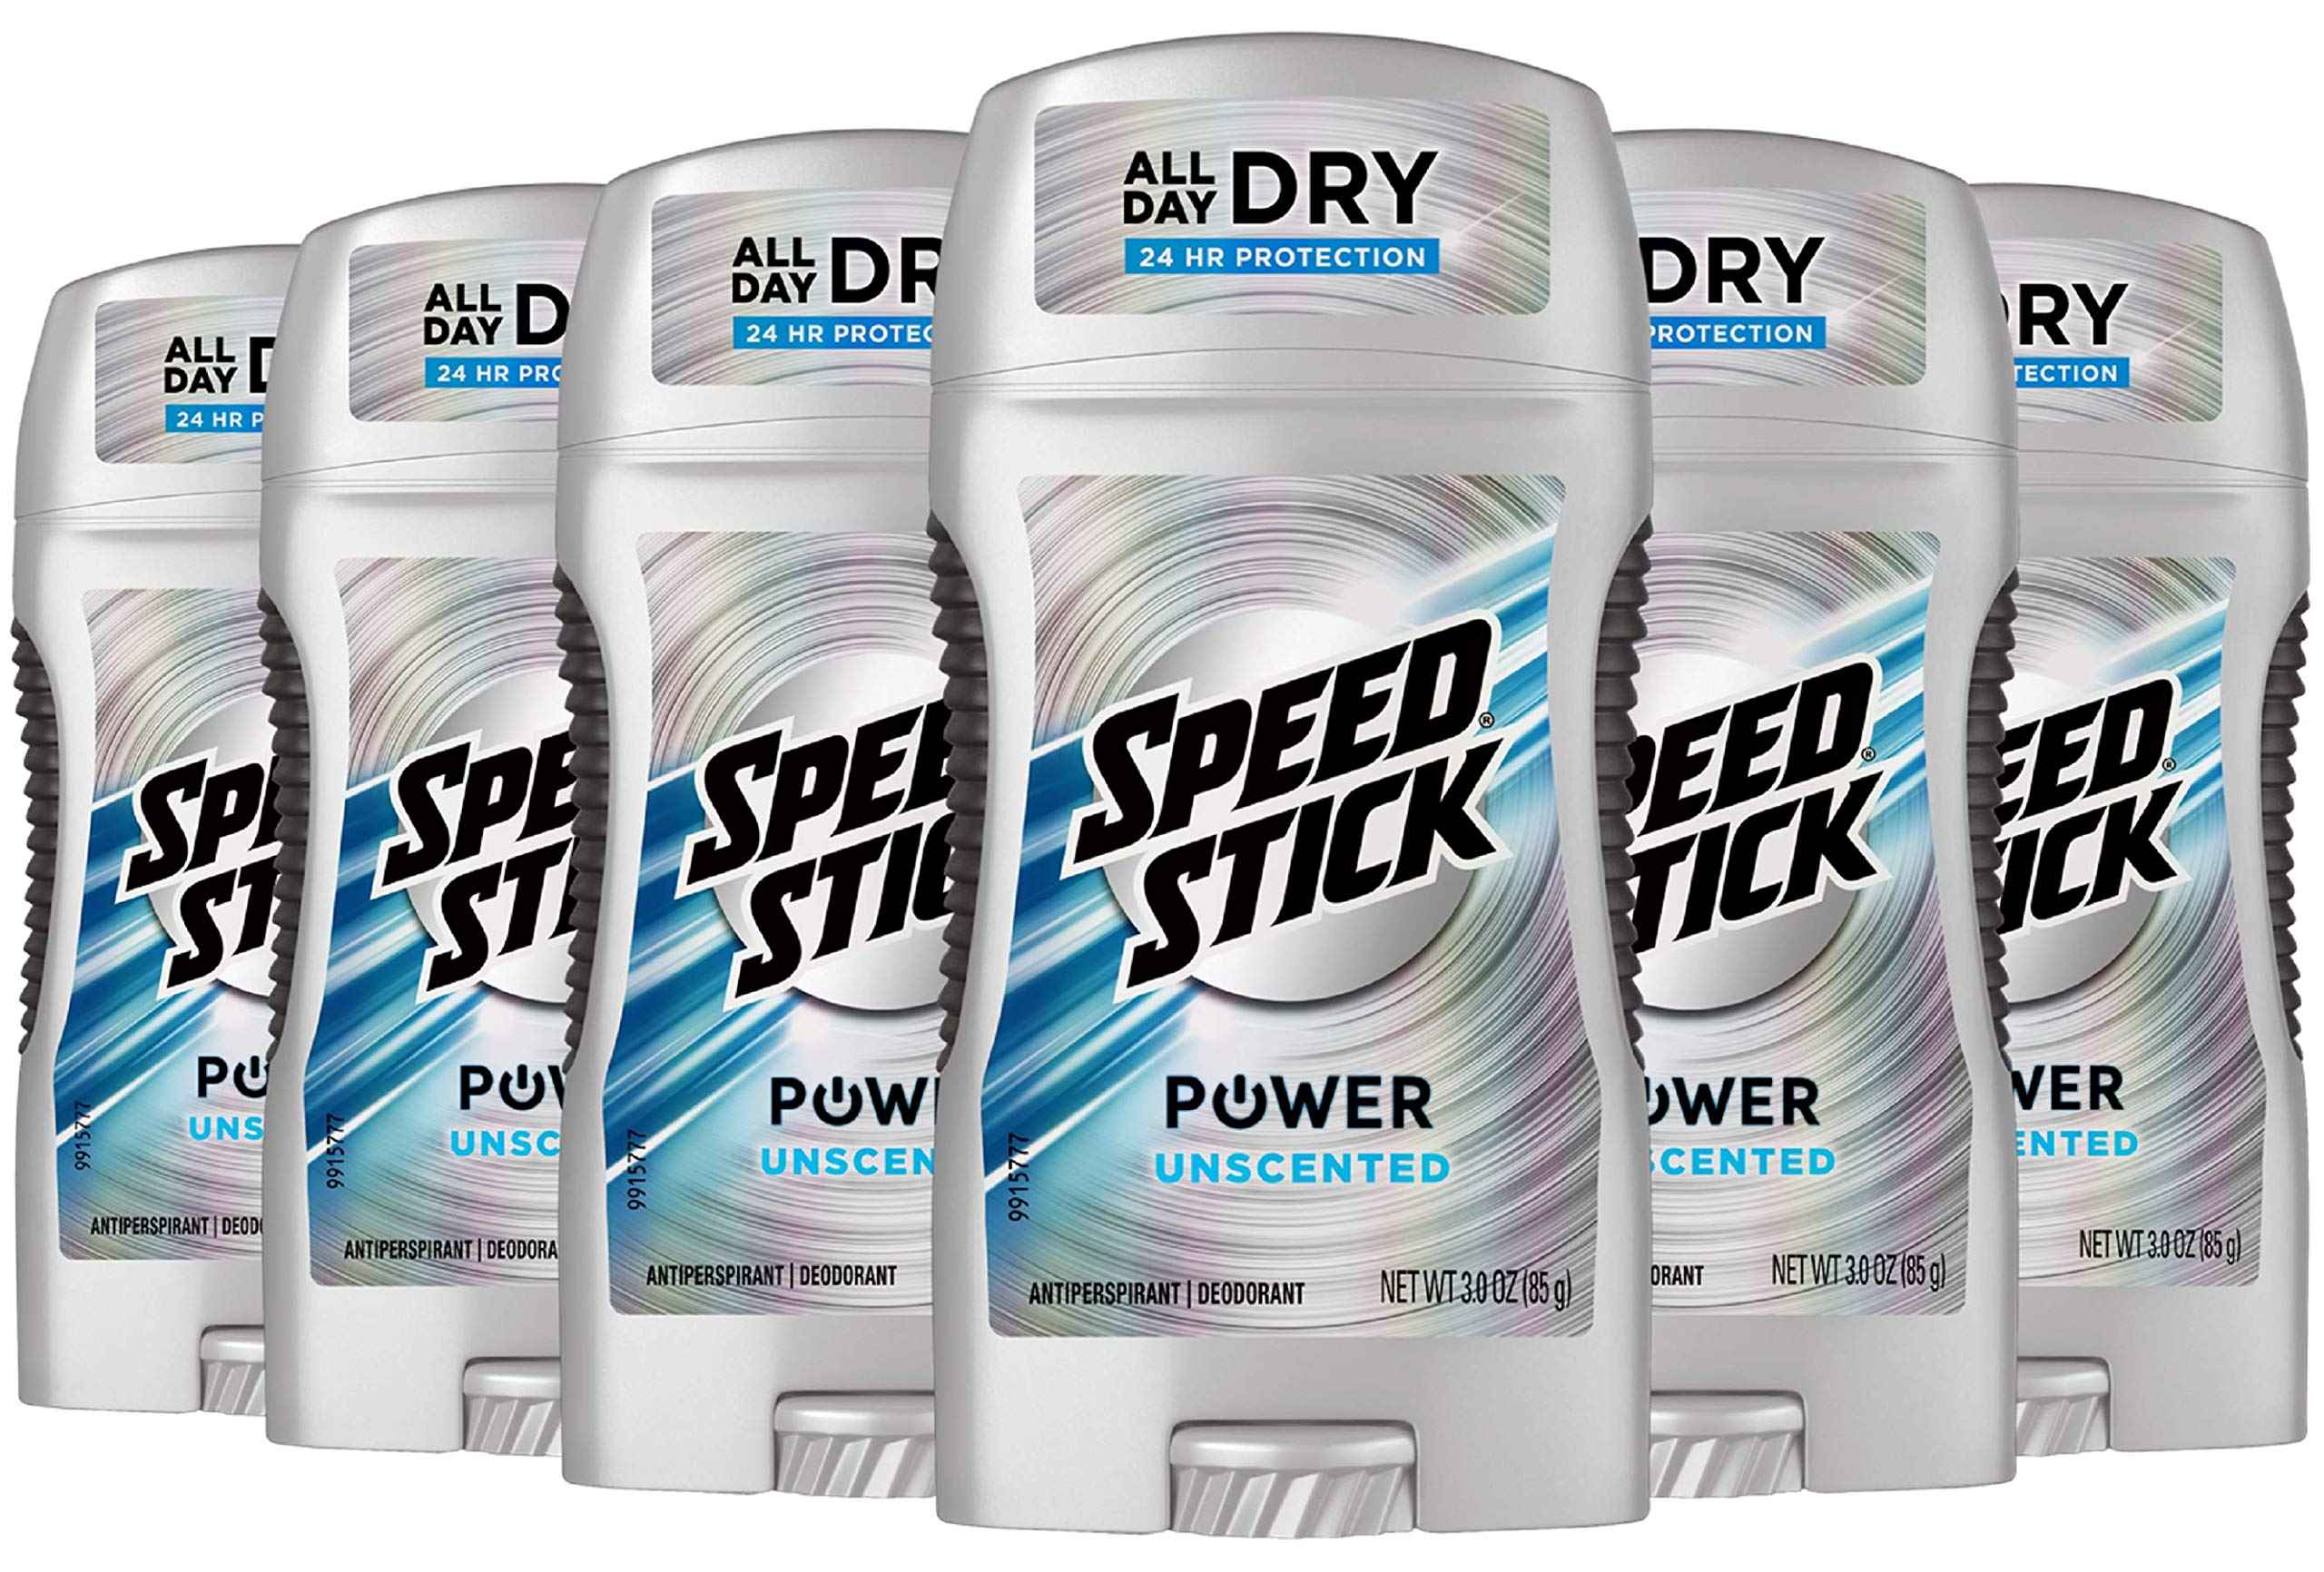 Speed Stick Power Antiperspirant Deodorant for Men, Unscented - 3 Ounce (6 Pack)